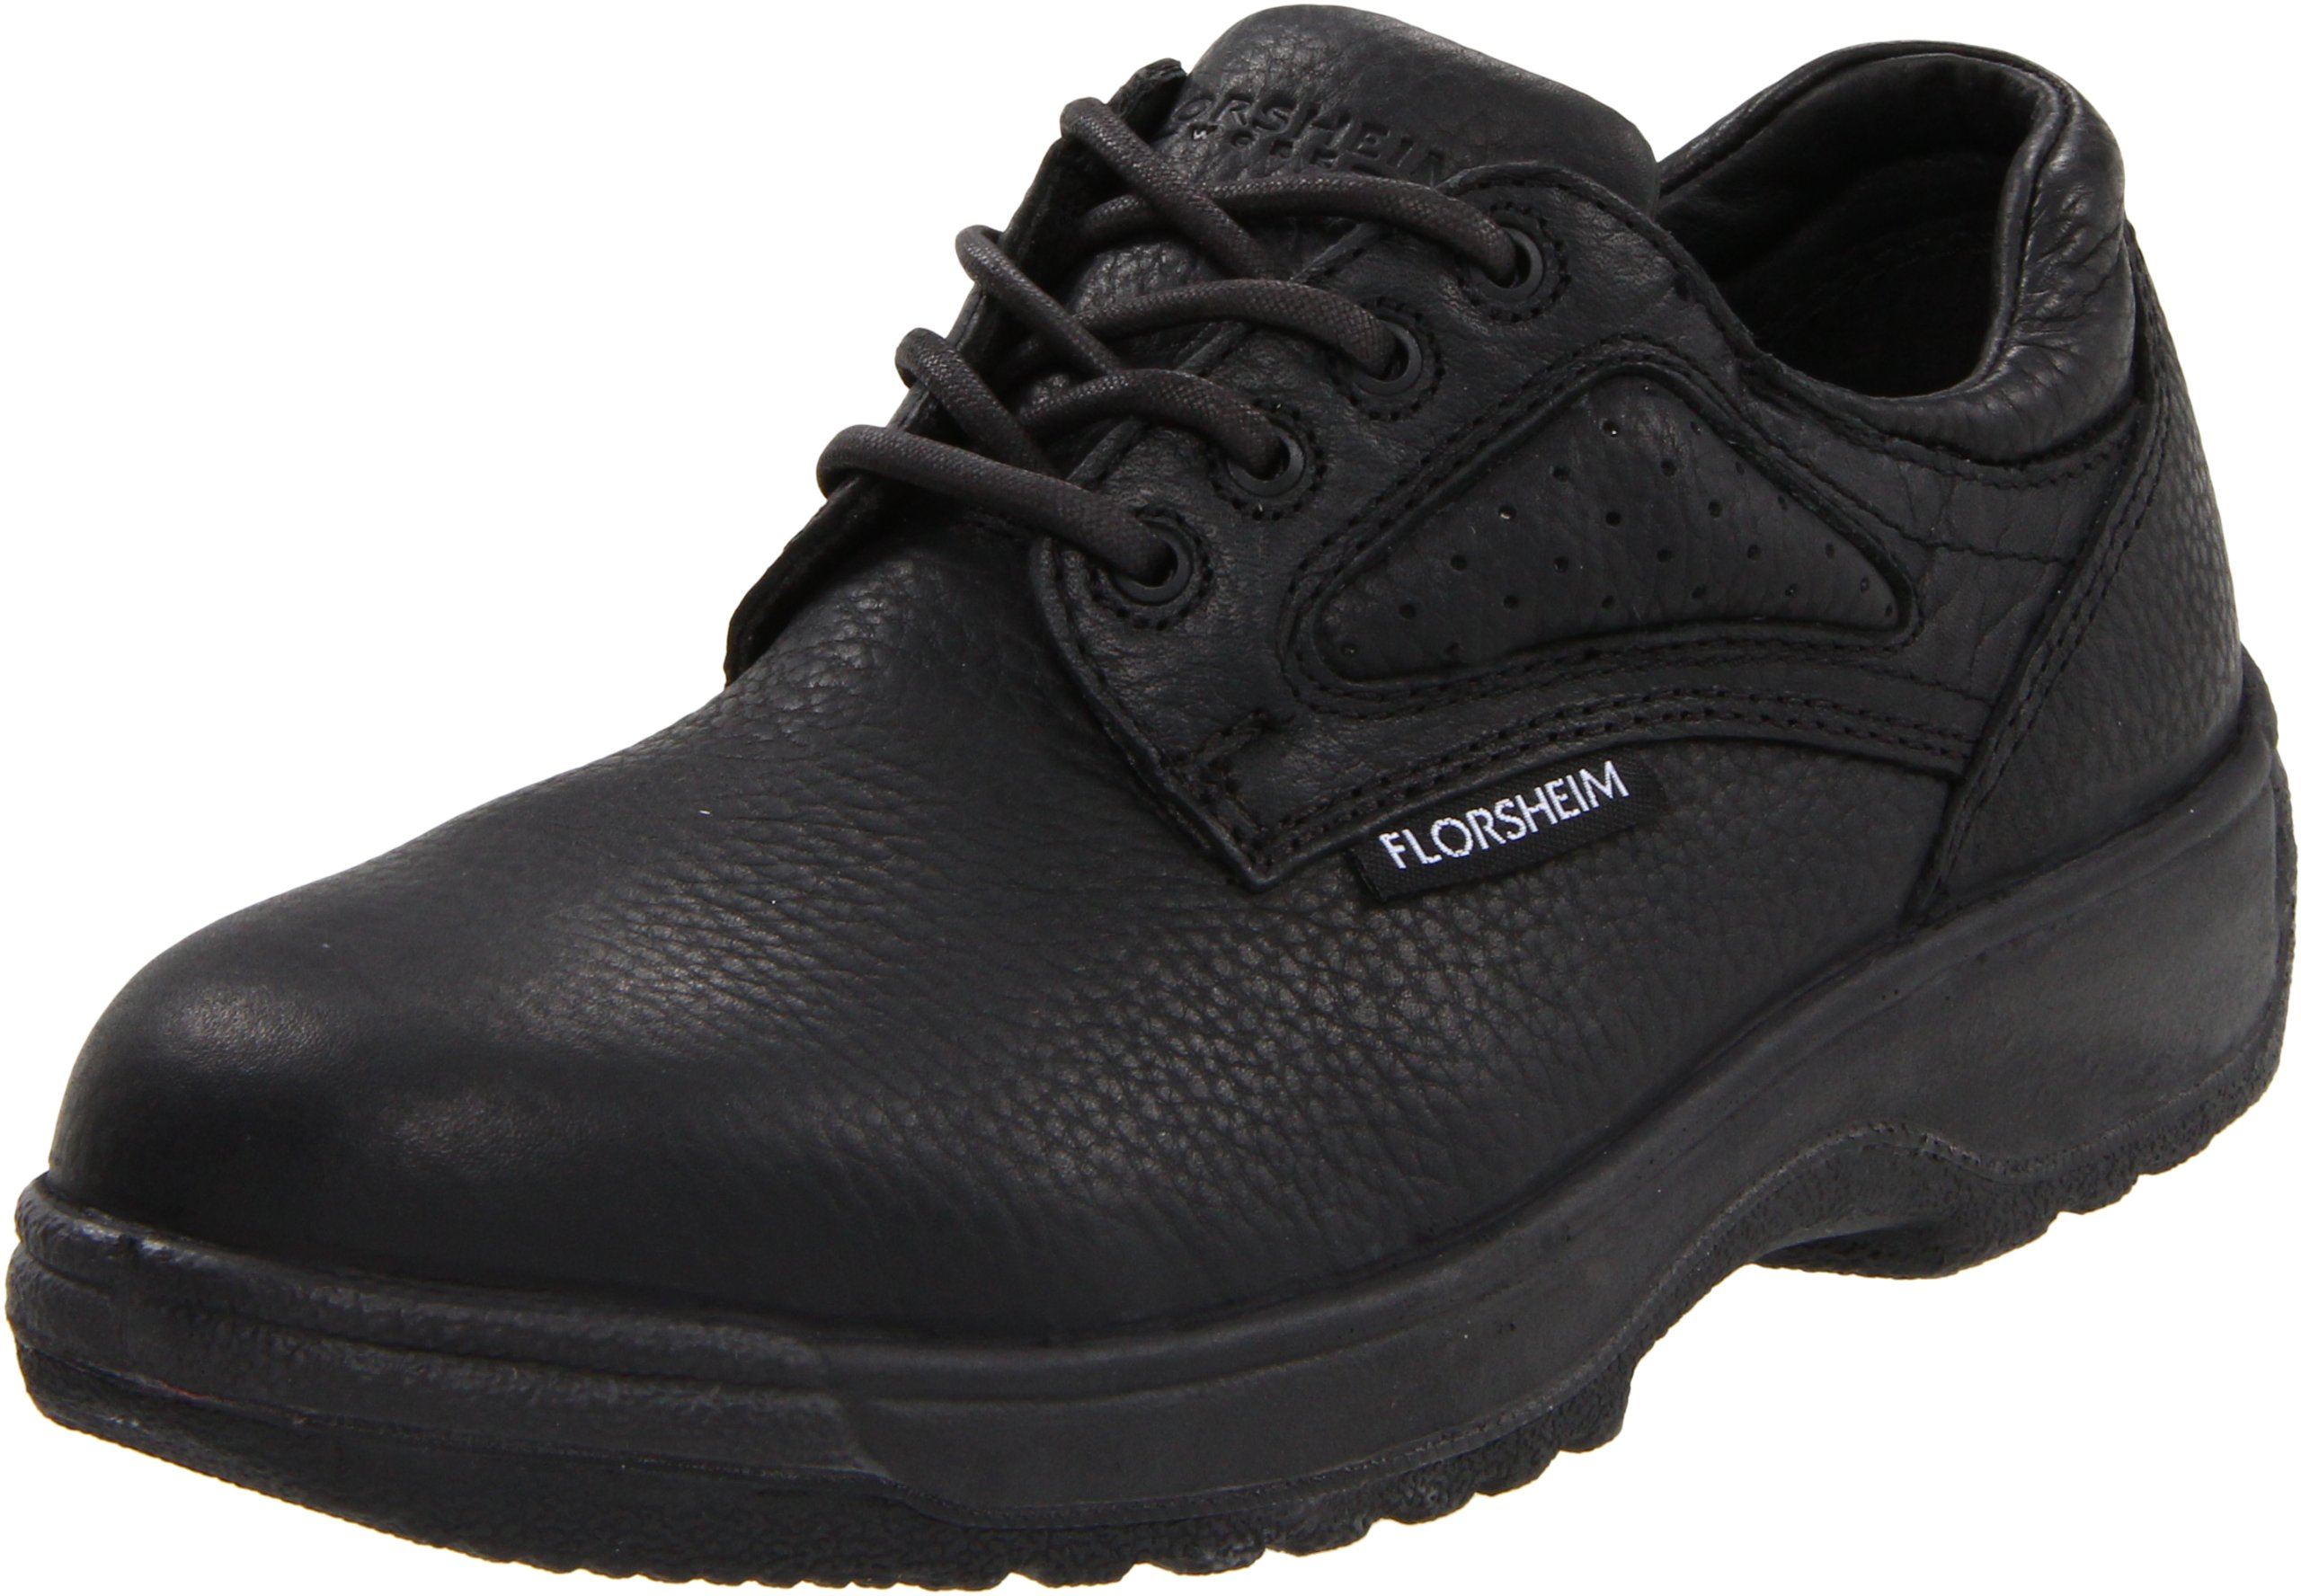 Florsheim Work Men's FS2416 Work Shoe,Black,11 3E US